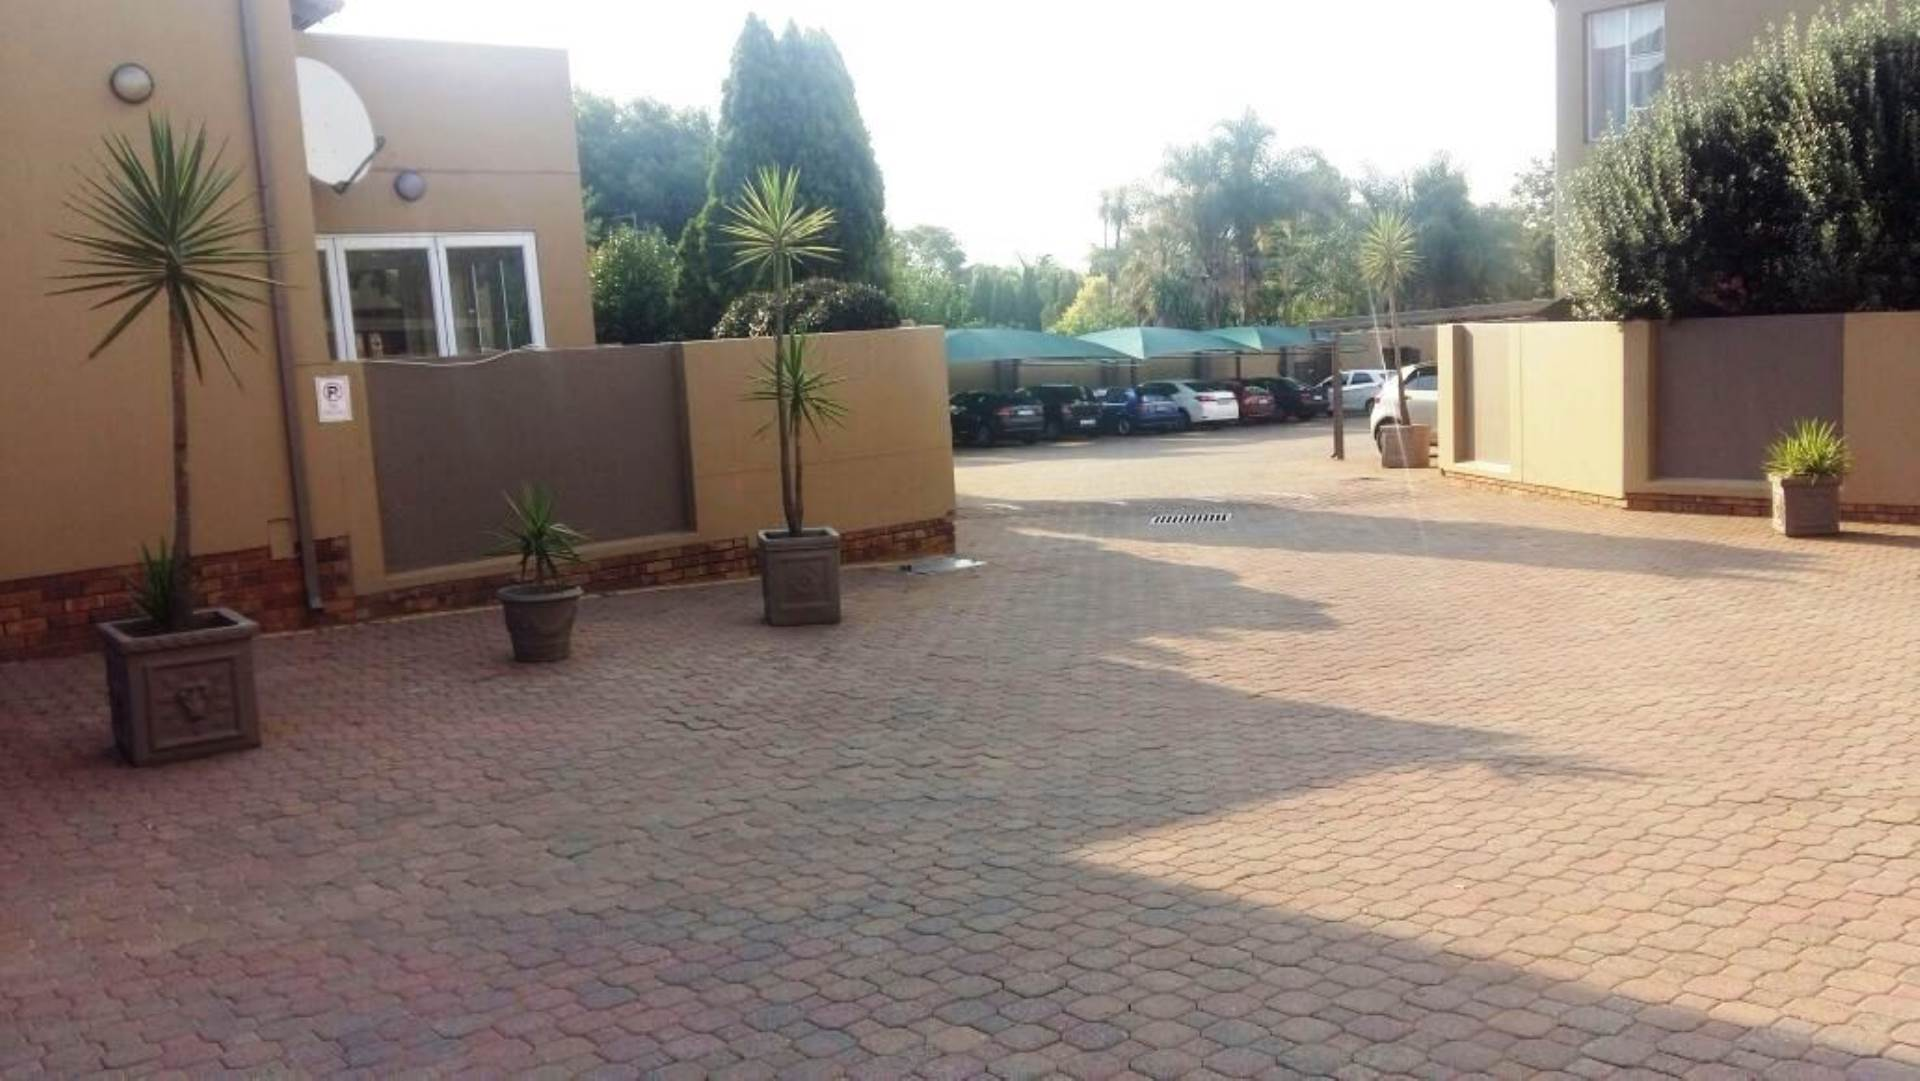 3 BedroomTownhouse To Rent In Bedfordview